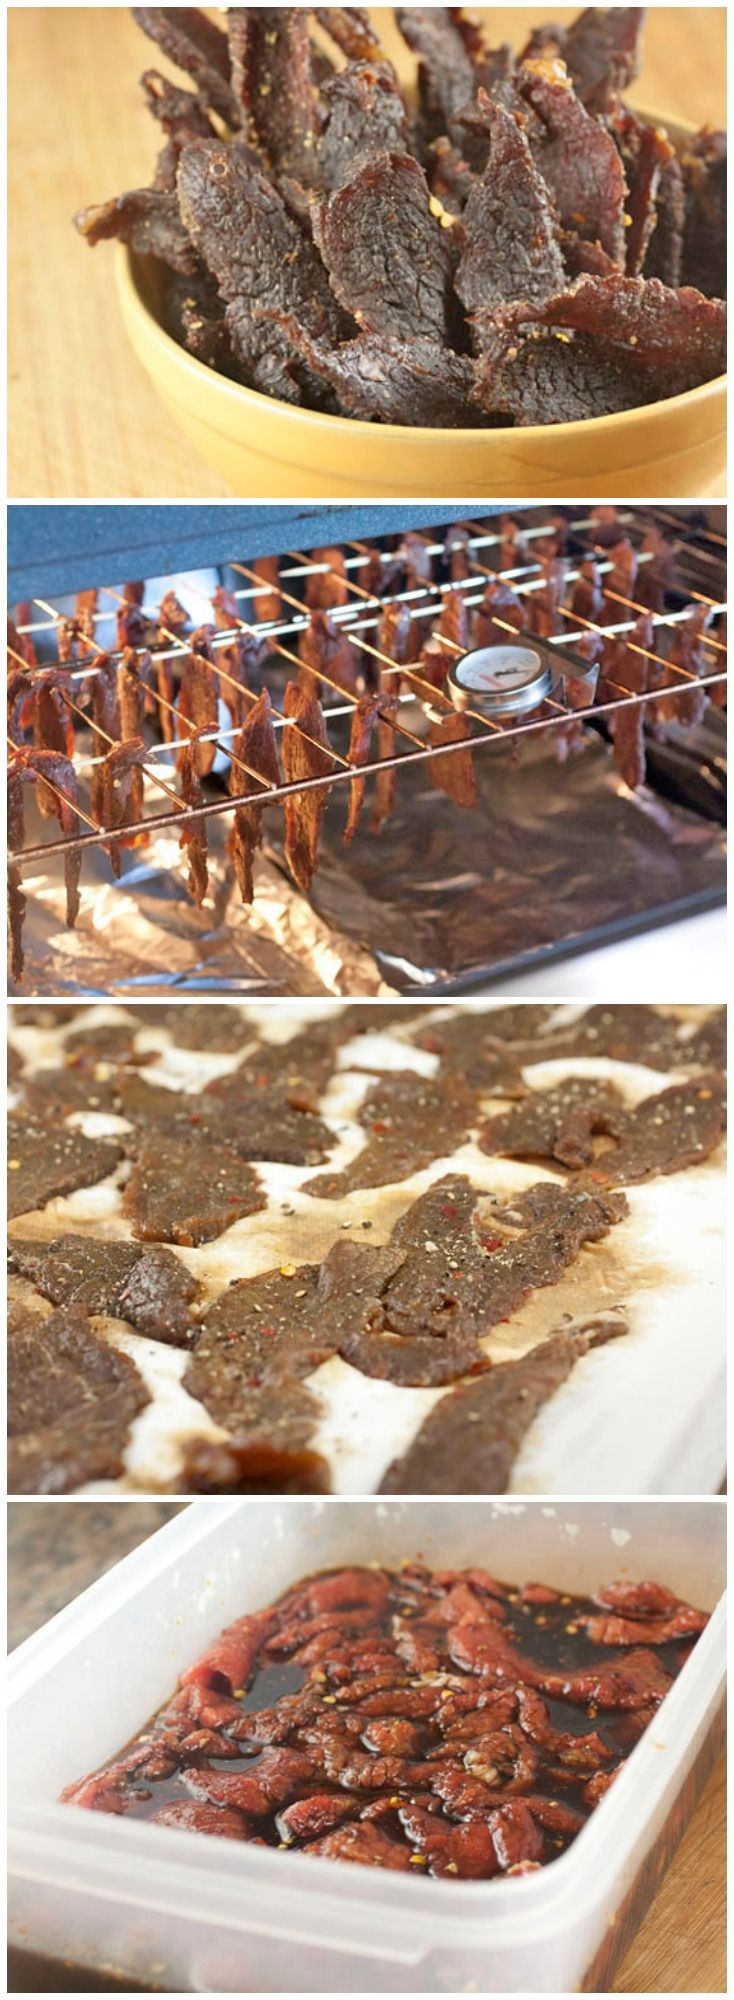 Beef Jerky... in the oven! ((ooh! Need to try this for sure. Jared would LOVE it!! He always wants jerky)